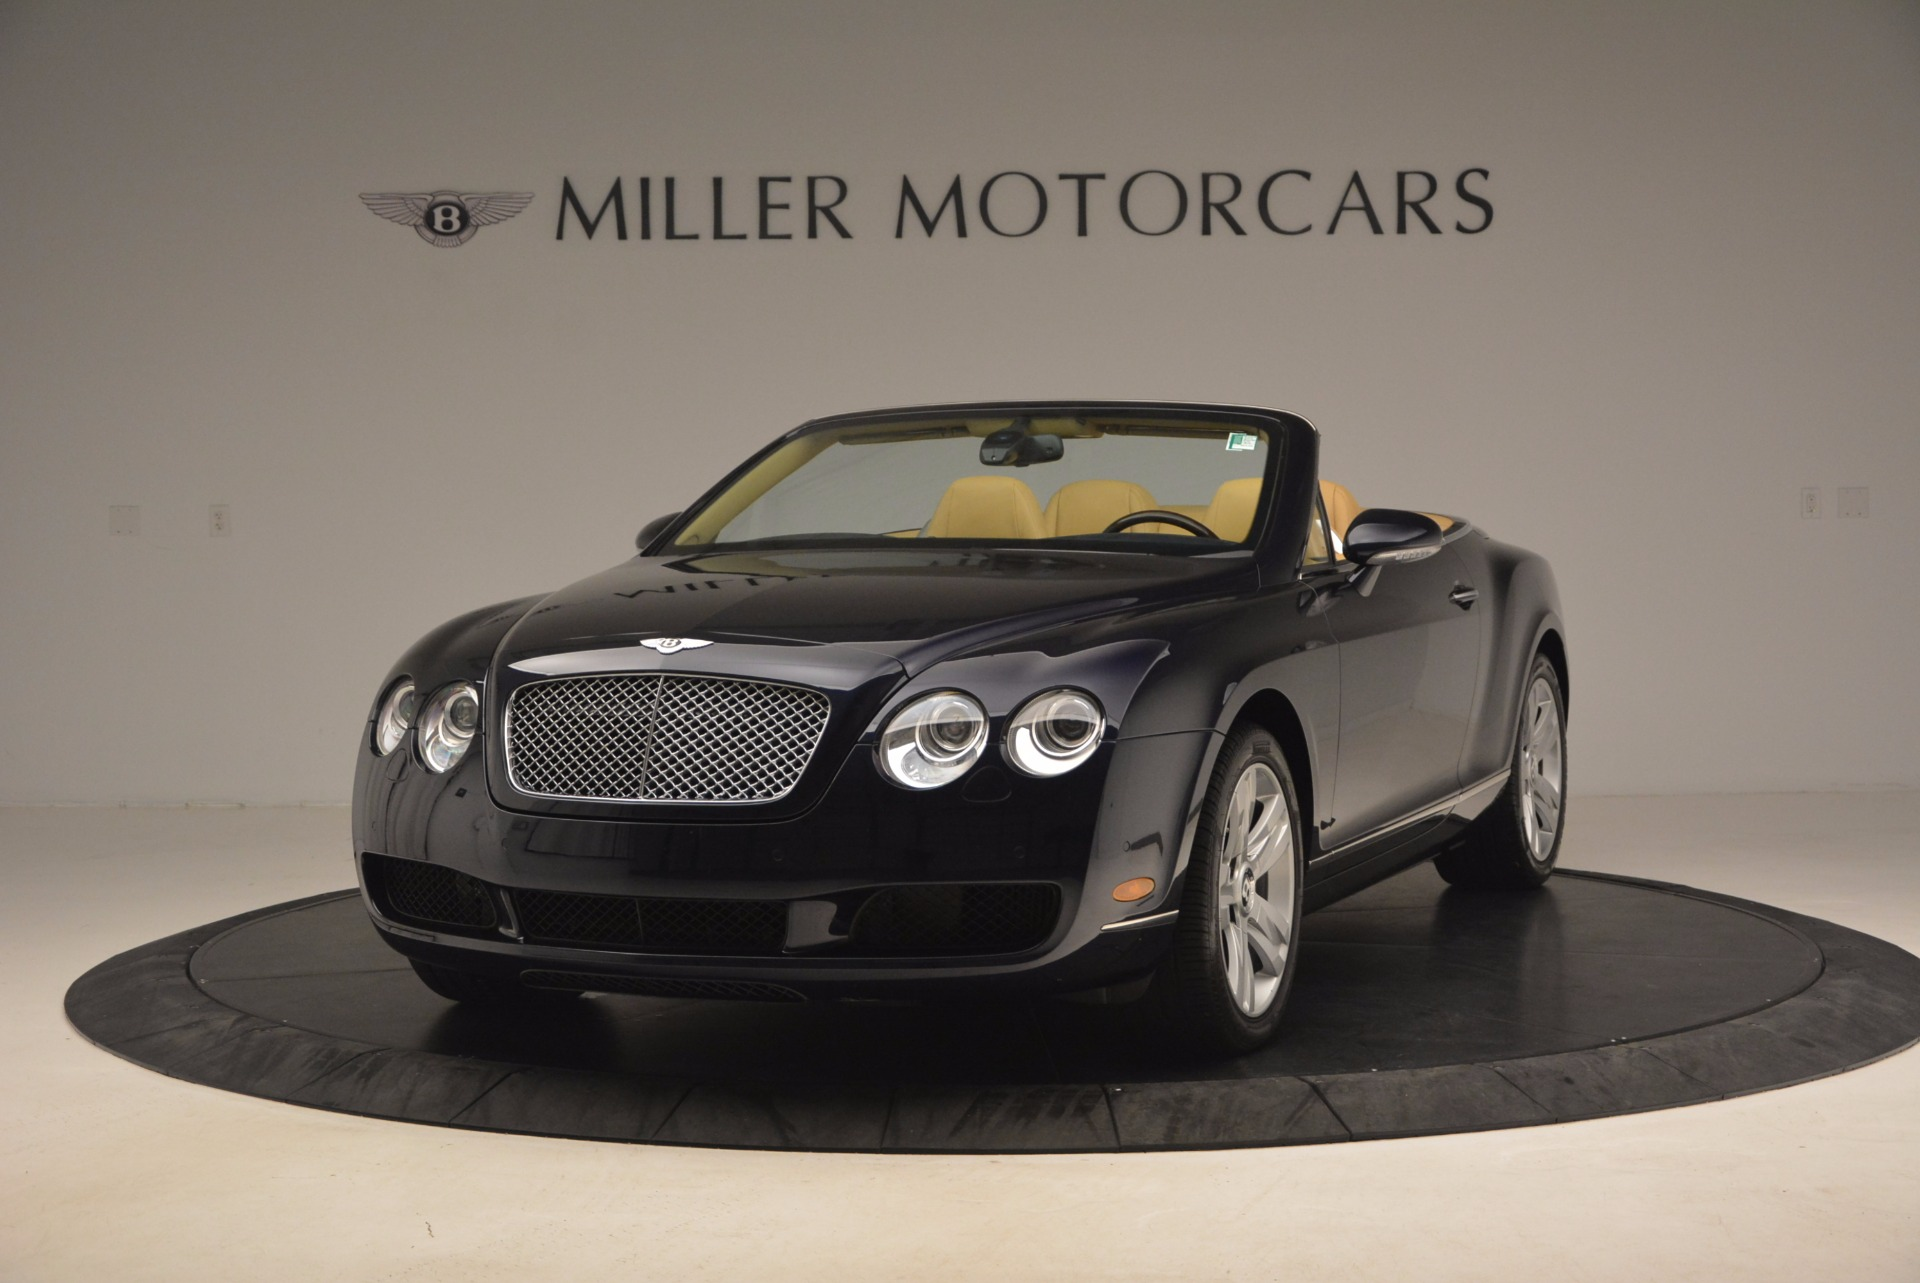 Used 2007 Bentley Continental GTC for sale Sold at Pagani of Greenwich in Greenwich CT 06830 1